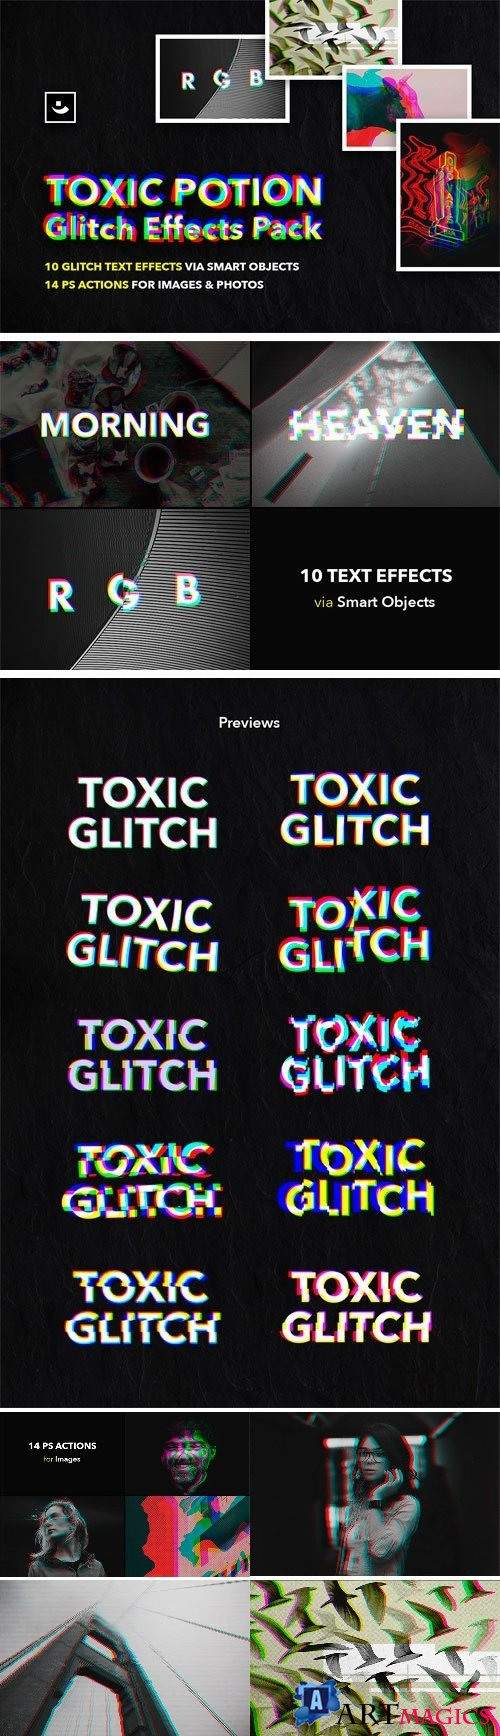 Toxic Potion Glitch Effects Pack 2053566